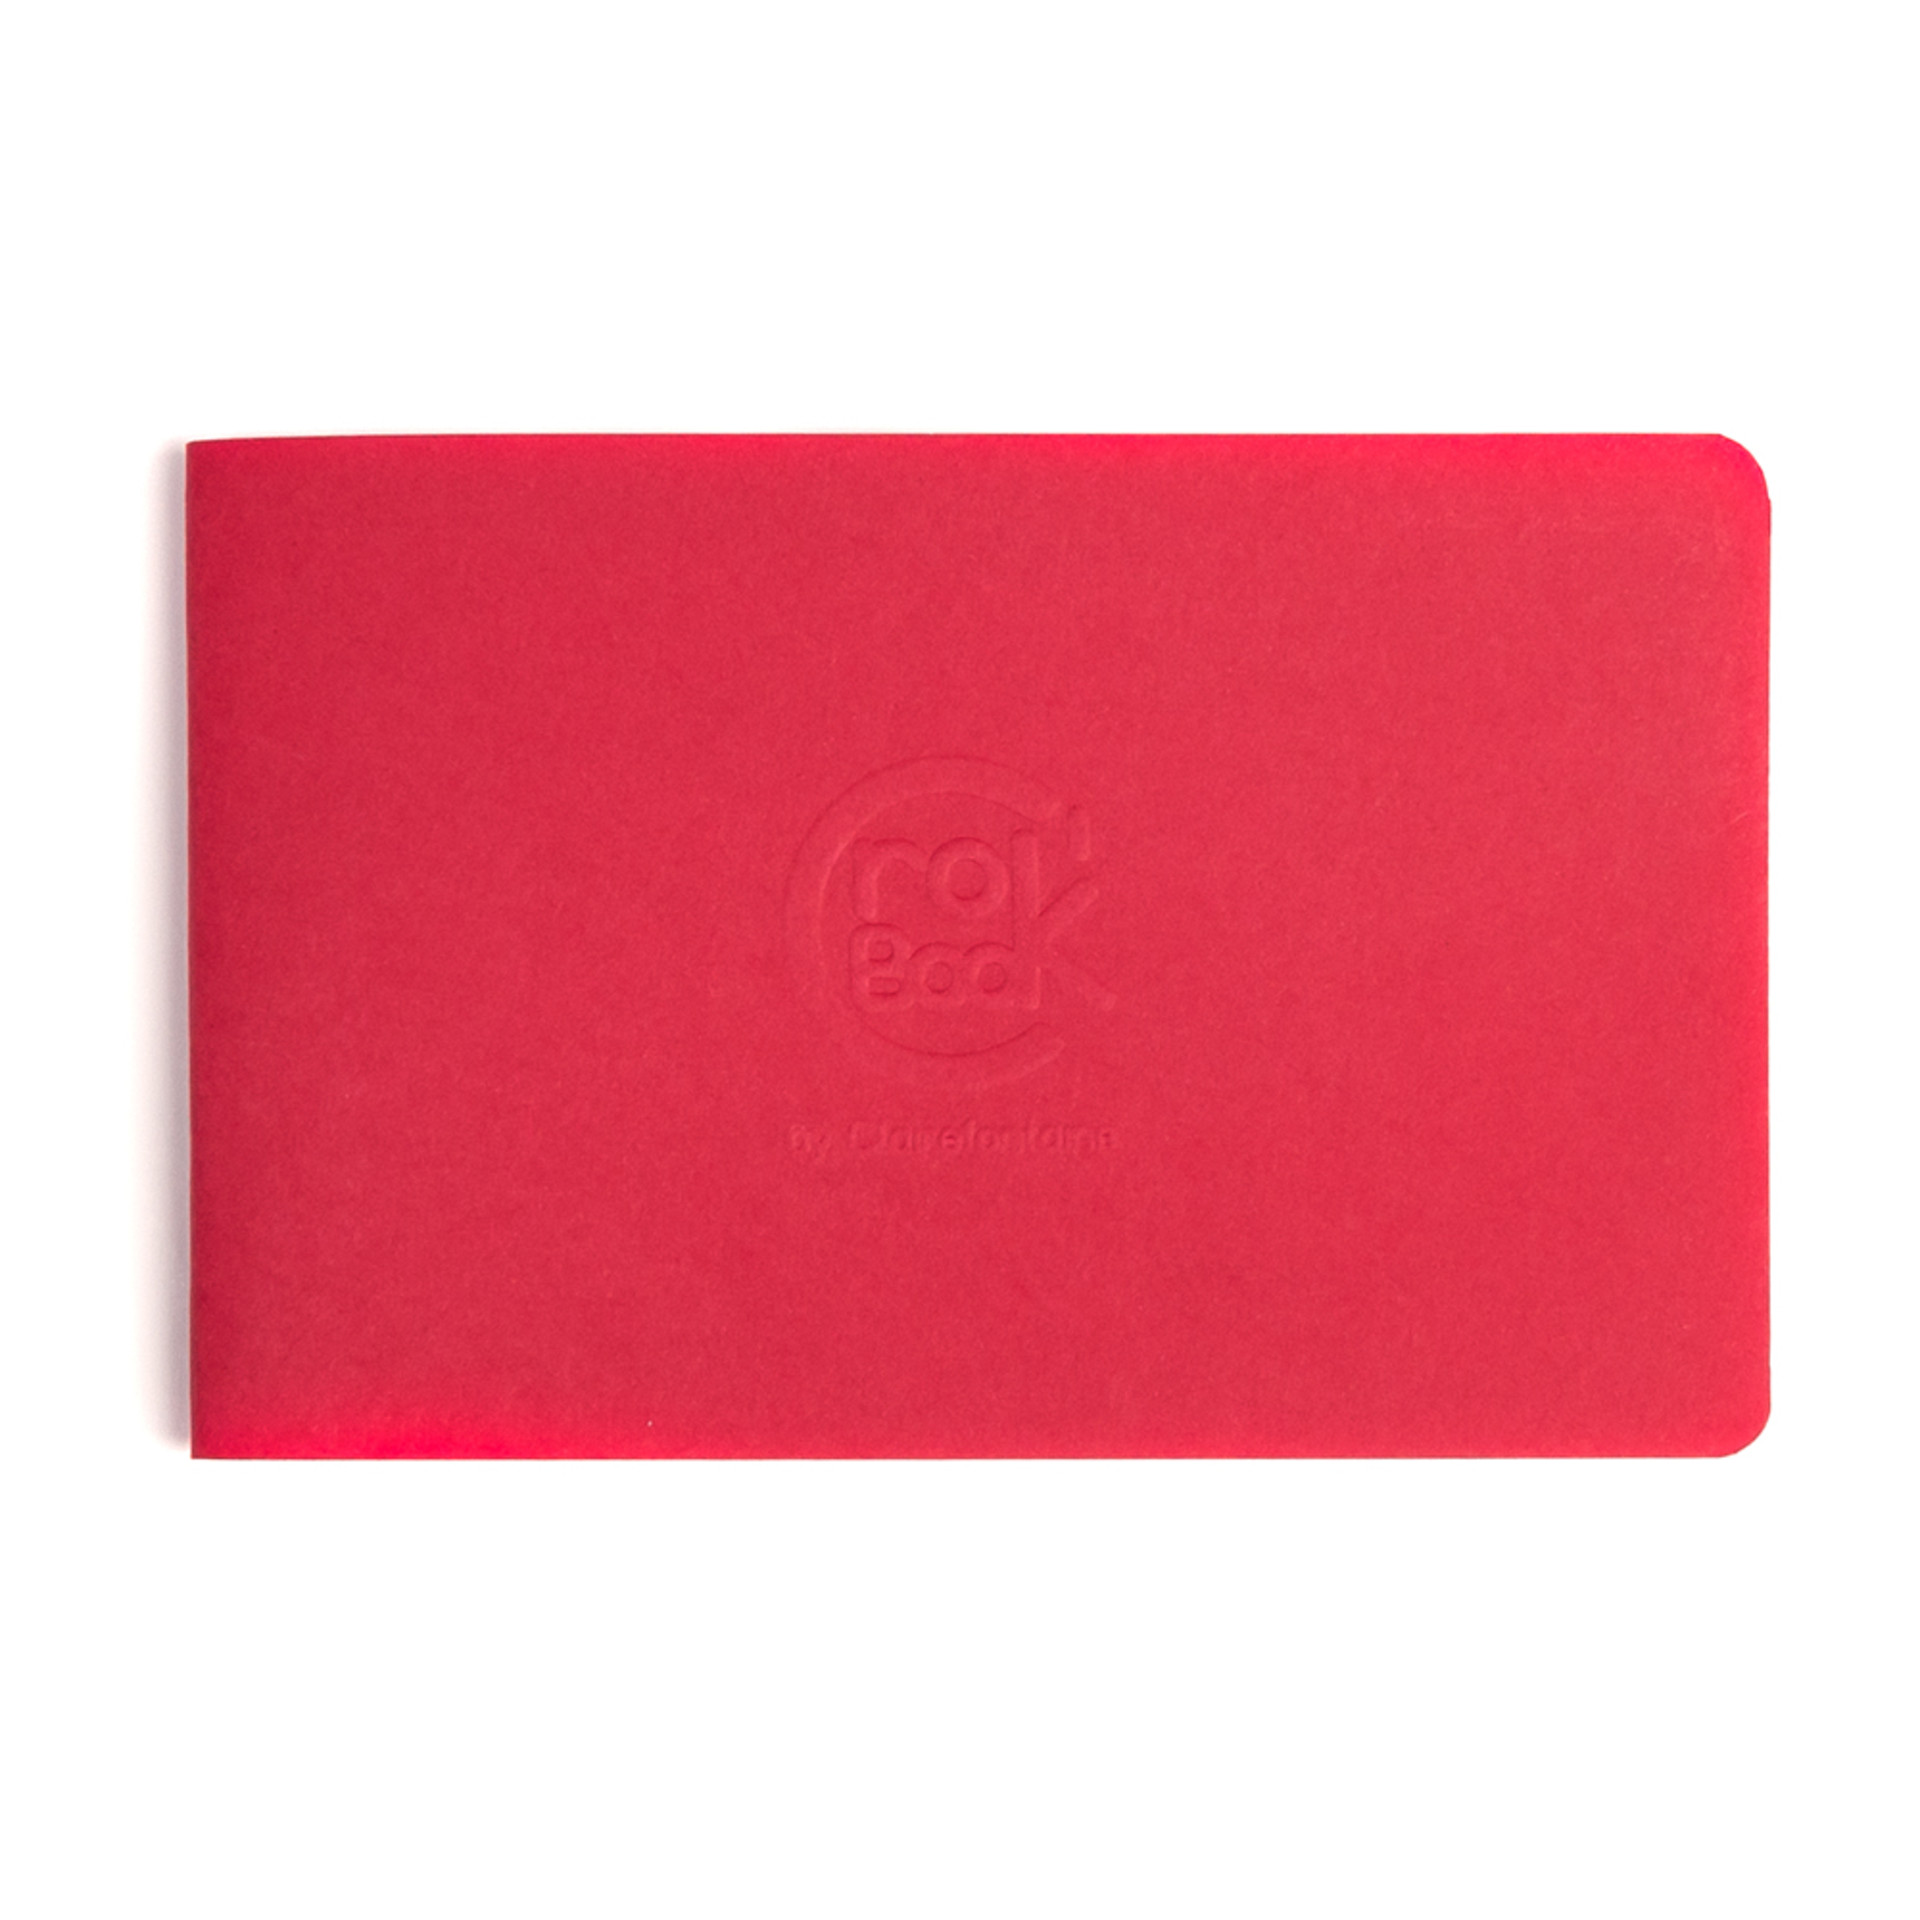 """Clairefontaine Assorted Crok 6.75""""x4.25"""" Blank Stapled Notebook"""